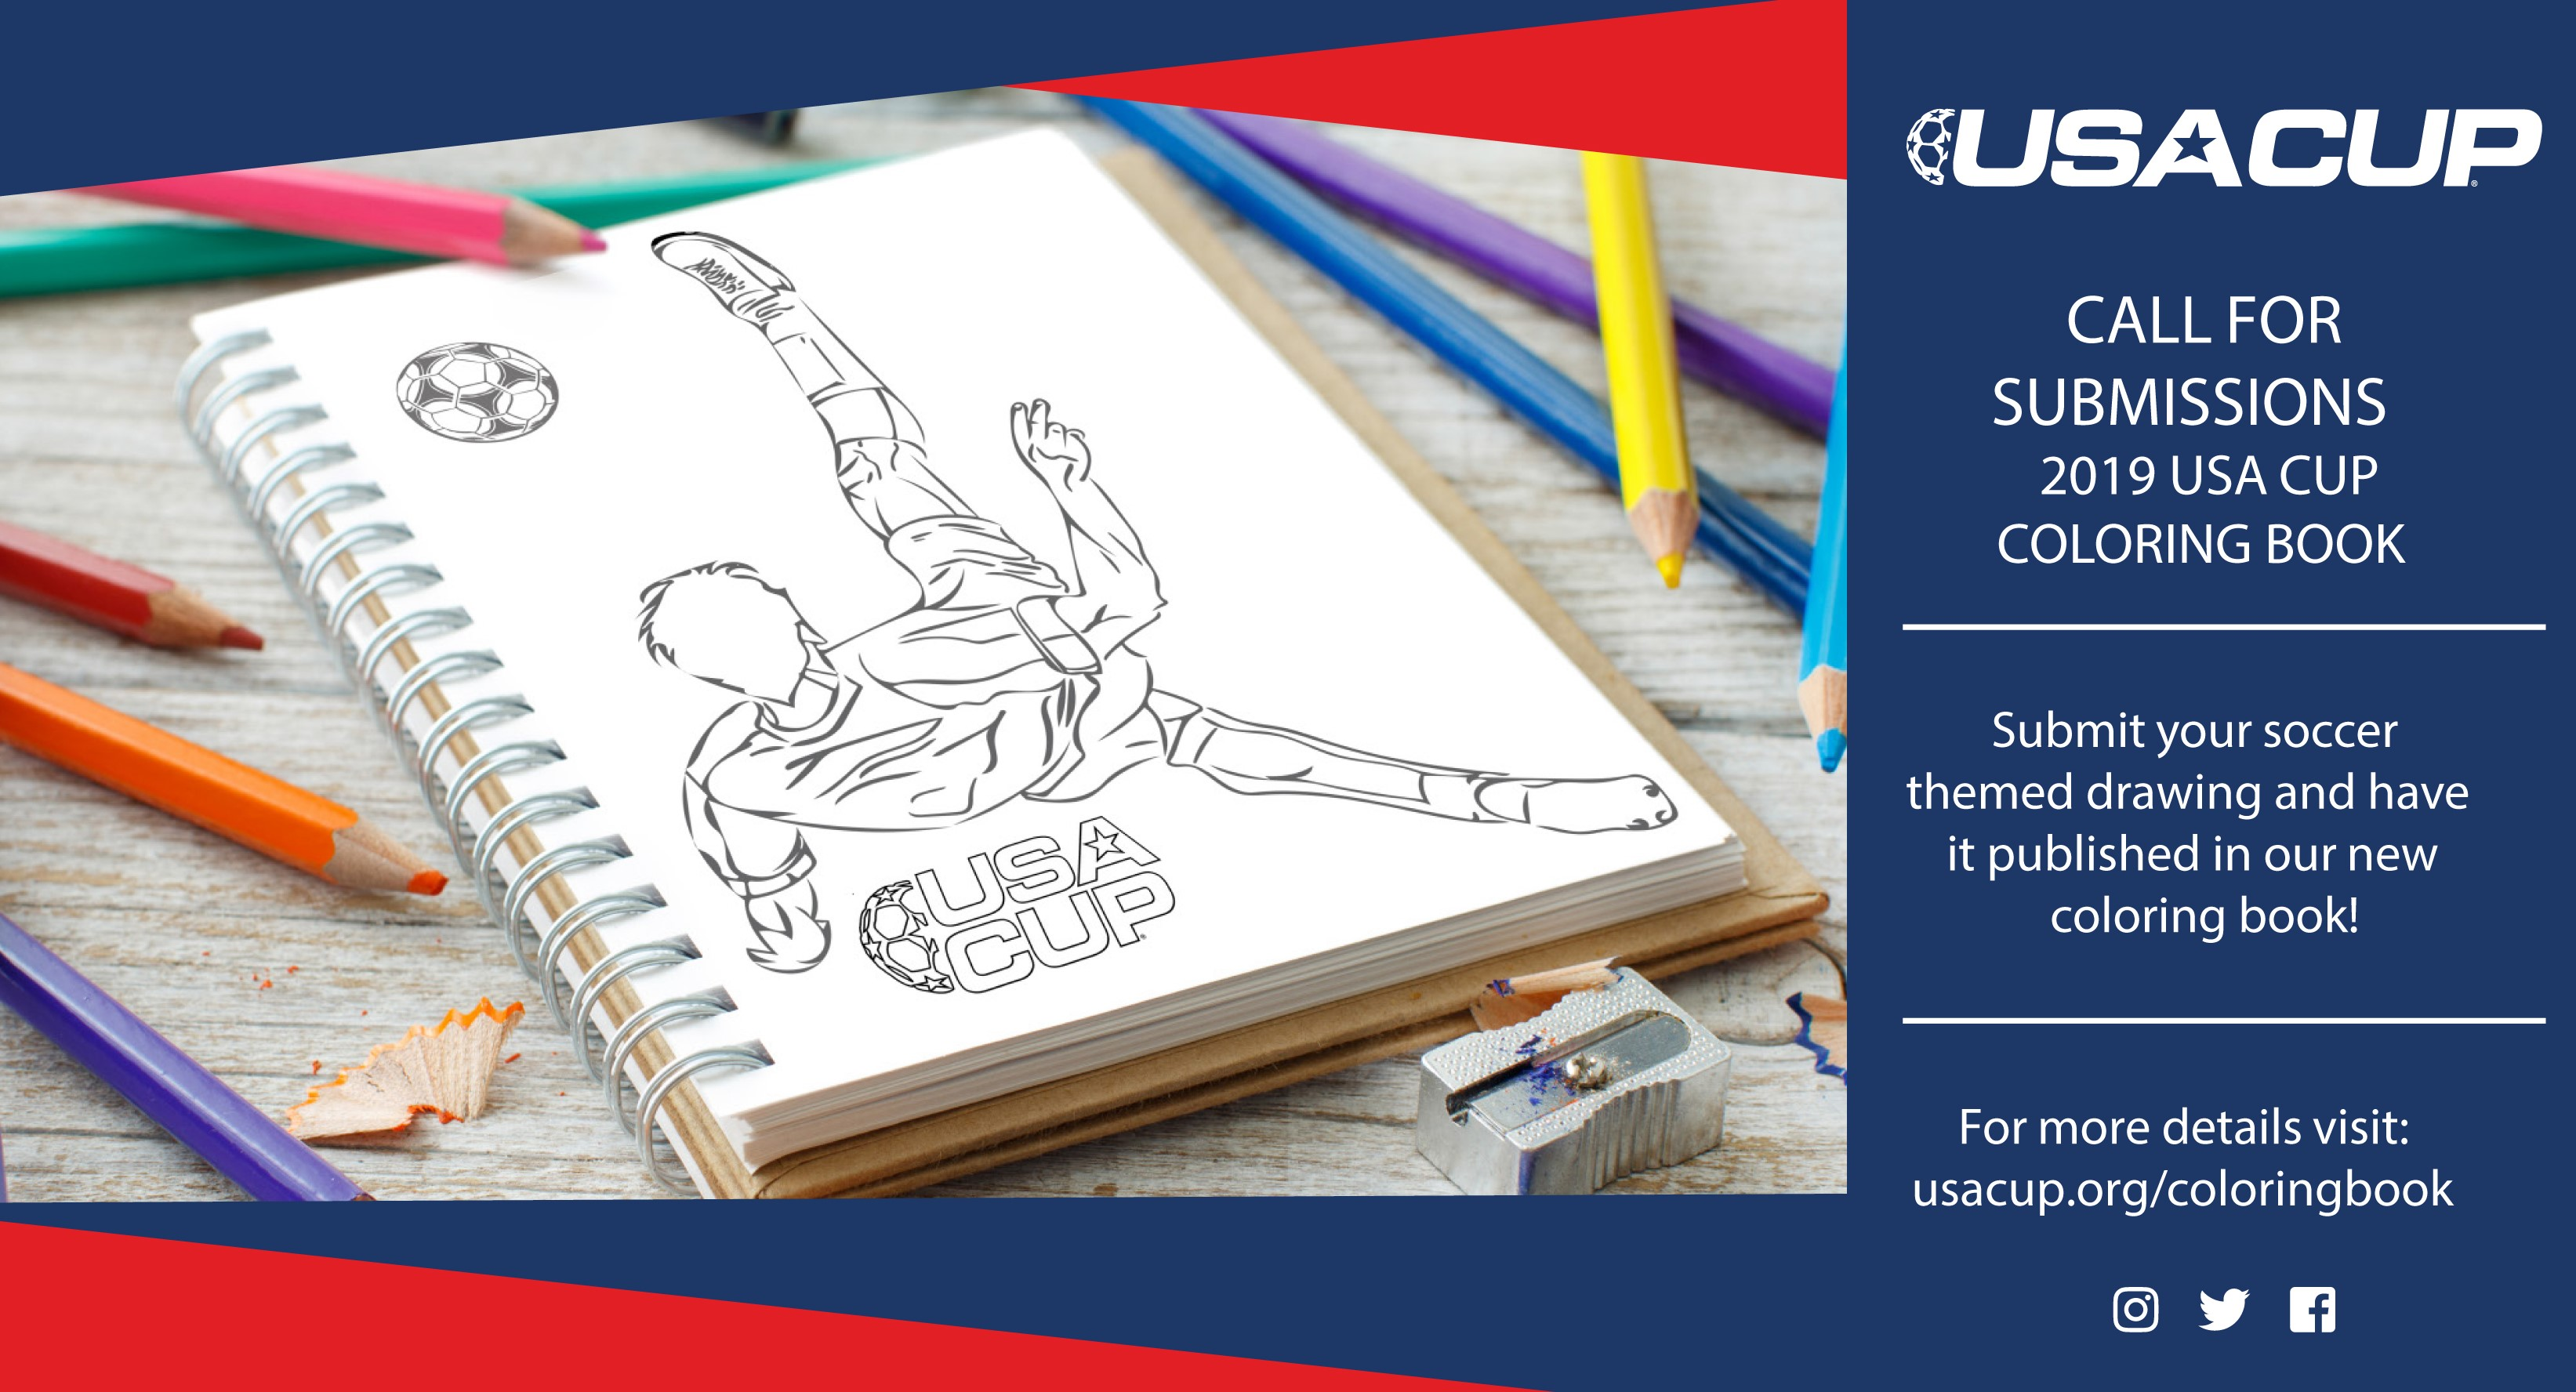 Cultivate your creativity! Submit a drawing to the USA CUP Coloring